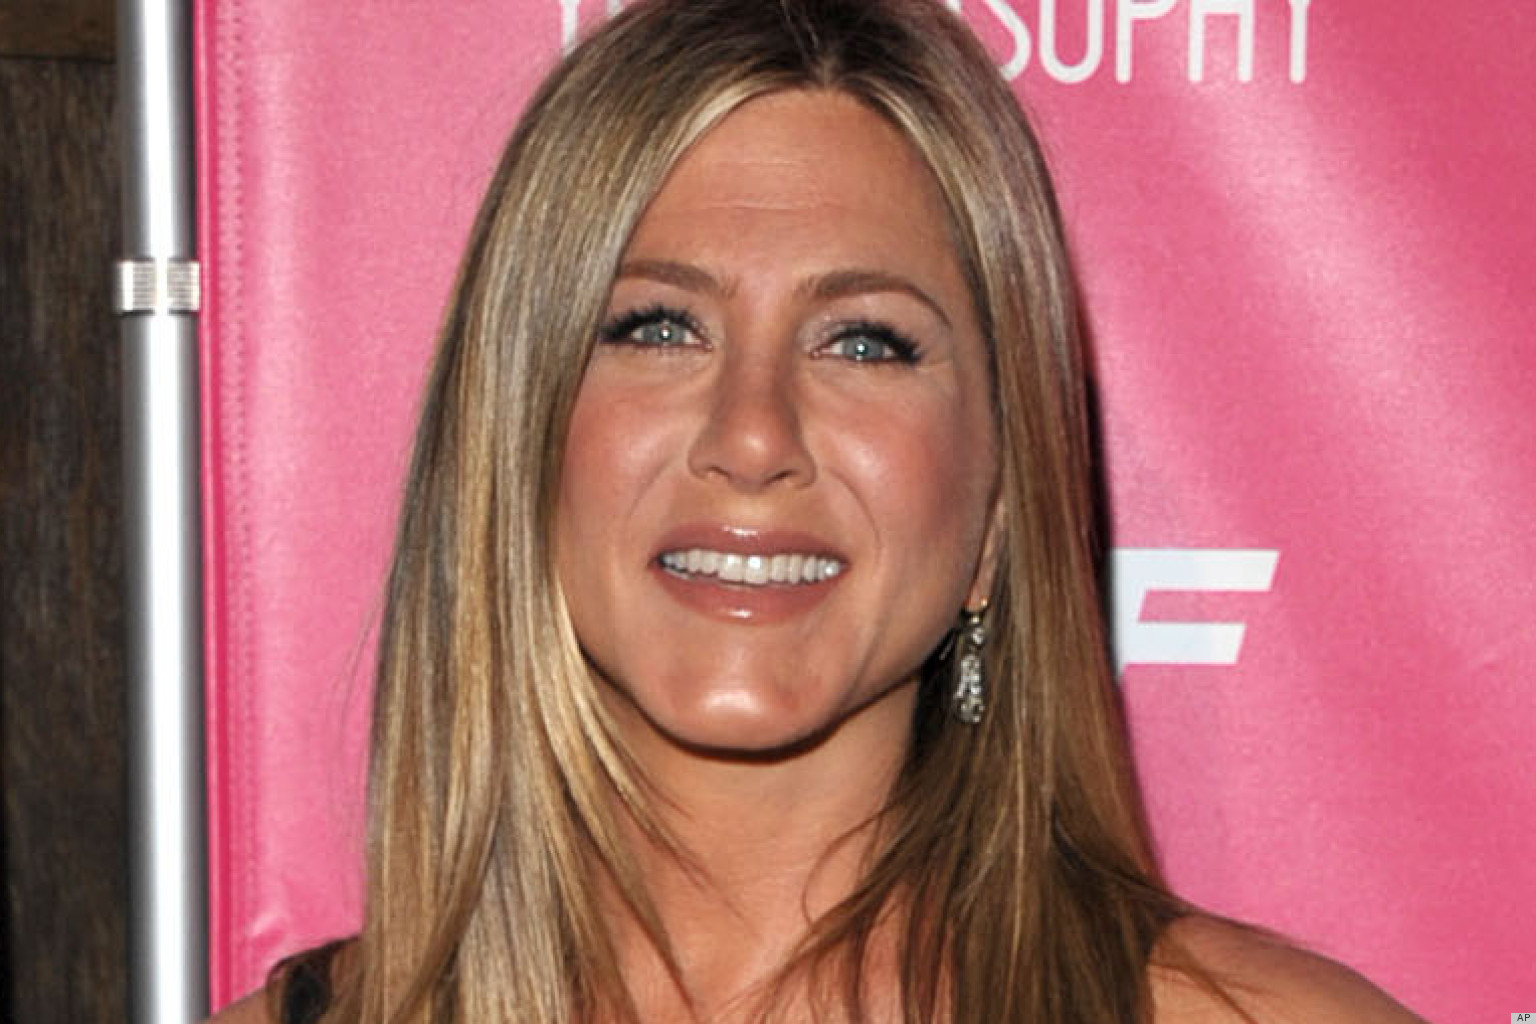 PHOTOS: Jennifer Aniston Takes The Plunge In An LBD